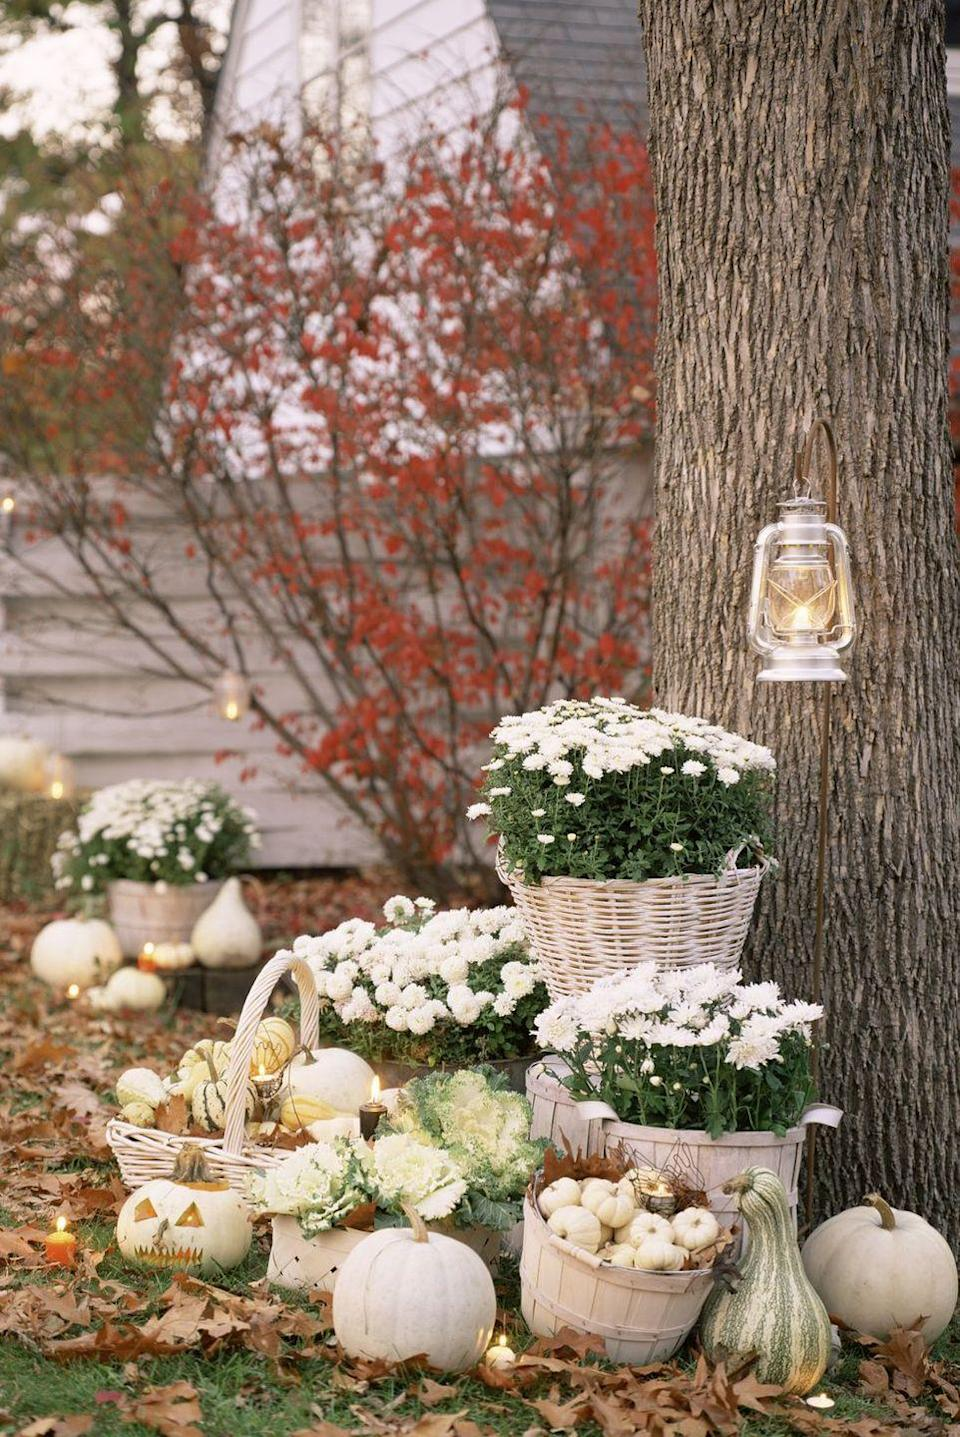 "<p>Keep it bright and ghostly with all whites and light neutrals. An all-white color palette makes fall staples like pumpkins, baskets, and mums feel elevated and elegant.</p><p><a class=""link rapid-noclick-resp"" href=""https://www.amazon.com/dp/B00PIROH4K/ref=sspa_dk_detail_0?psc=1&pd_rd_i=B00PIROH4K&pd_rd_w=n7tEM&pf_rd_p=7d37a48b-2b1a-4373-8c1a-bdcc5da66be9&pd_rd_wg=Fku2X&pf_rd_r=CTE63H0EZJWNTQ66SQBZ&pd_rd_r=eac93f81-eabf-40e8-b4ce-7faec0cb1921&spLa=ZW5jcnlwdGVkUXVhbGlmaWVyPUEzM1owR1VQOTlLVEhaJmVuY3J5cHRlZElkPUEwNjE0MzE3MjE0TlZJMEhSVDZCWiZlbmNyeXB0ZWRBZElkPUEwNTcyODExM09PQ1AwTTBDWkEzMyZ3aWRnZXROYW1lPXNwX2RldGFpbCZhY3Rpb249Y2xpY2tSZWRpcmVjdCZkb05vdExvZ0NsaWNrPXRydWU%3D&tag=syn-yahoo-20&ascsubtag=%5Bartid%7C10057.g.2554%5Bsrc%7Cyahoo-us"" rel=""nofollow noopener"" target=""_blank"" data-ylk=""slk:BUY NOW"">BUY NOW</a> <strong><em>Bushel Basket, $15</em></strong></p>"